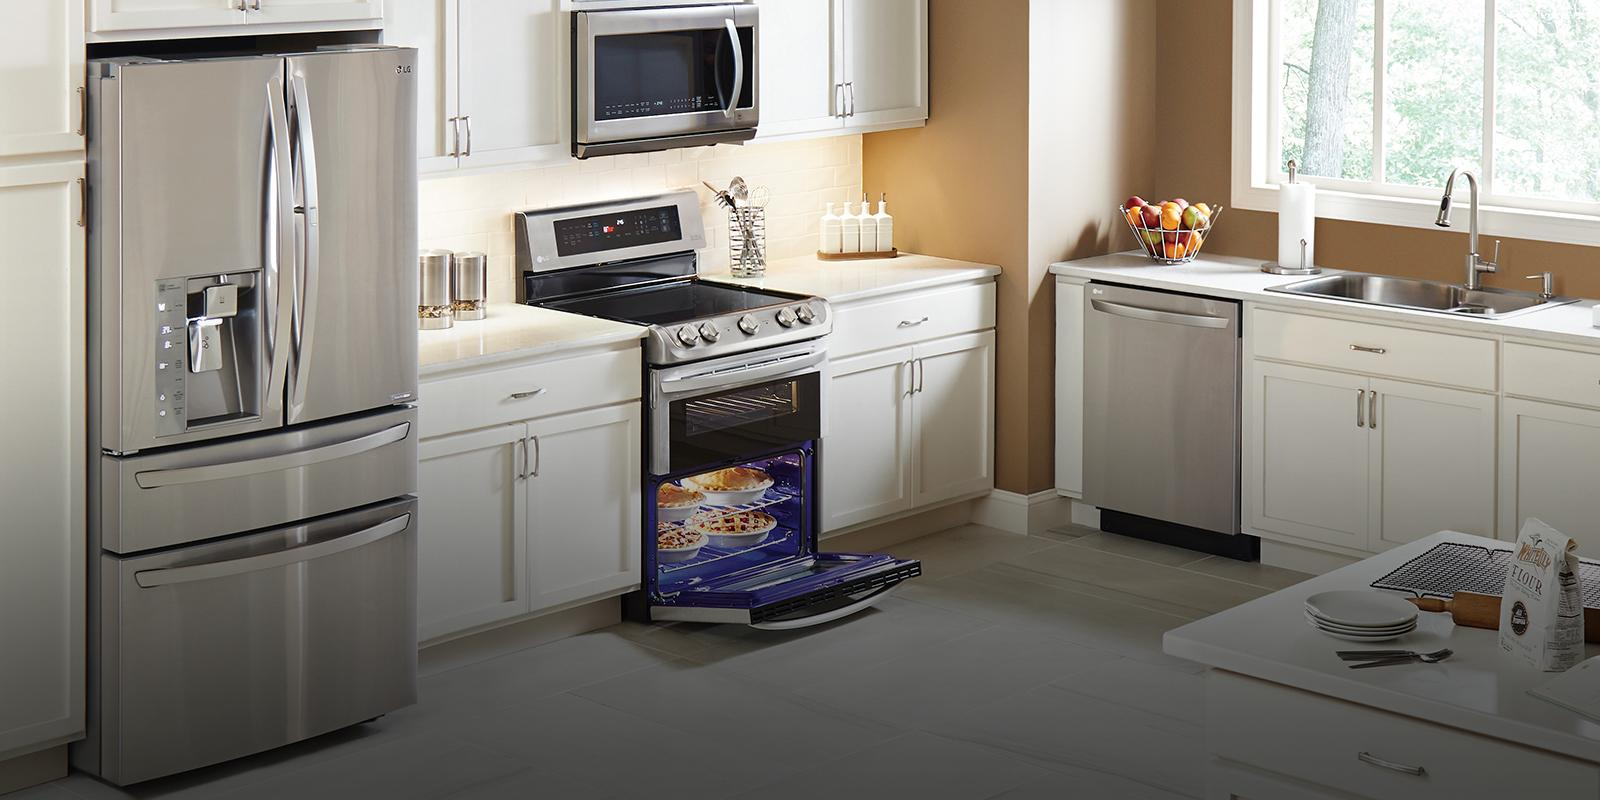 Uncategorized Kitchen Appliance Repairs lg appliances compare kitchen home usa bring the cutting edge back to kitchen